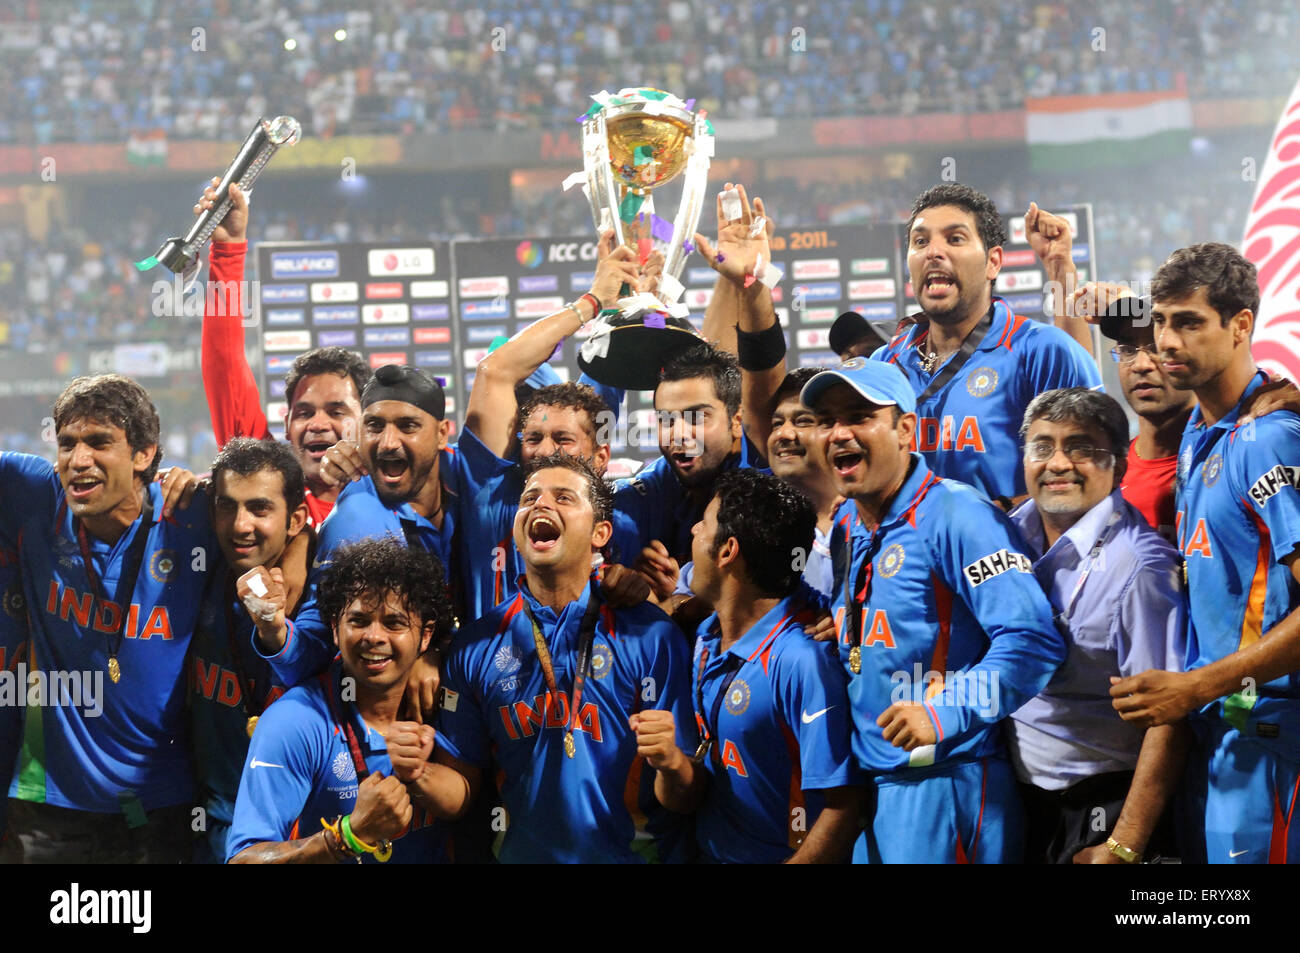 2011 Cricket World Cup Final